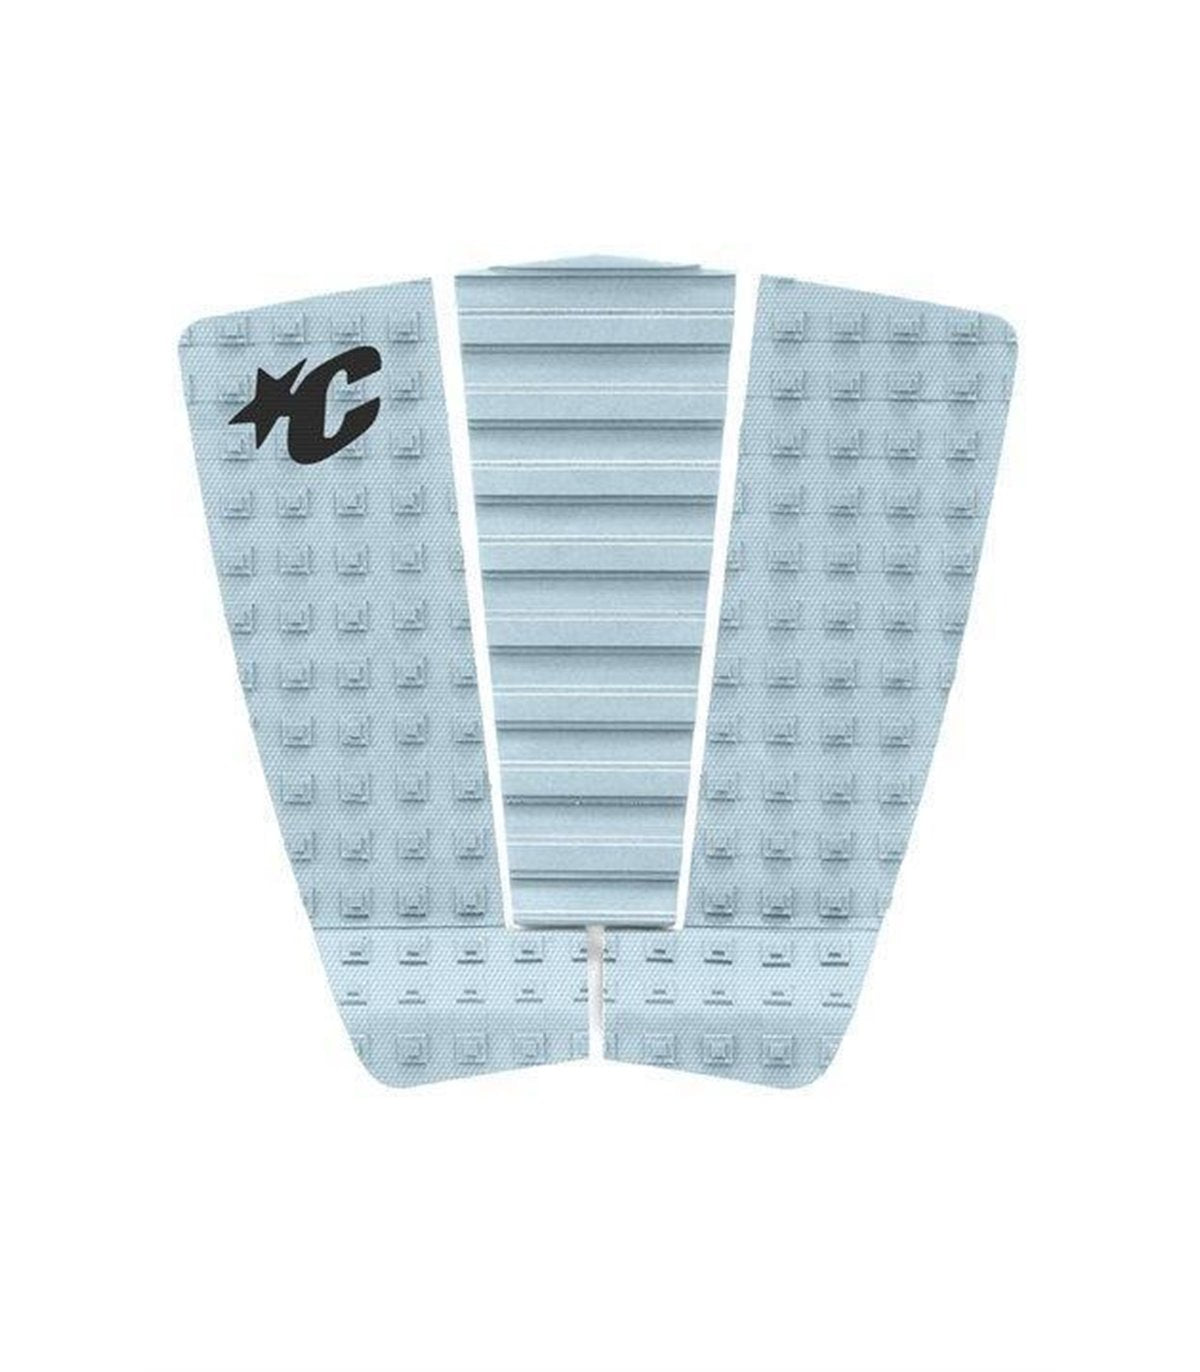 Creatures Of Leisure Mitch Coleborn - Lite Traction Pad